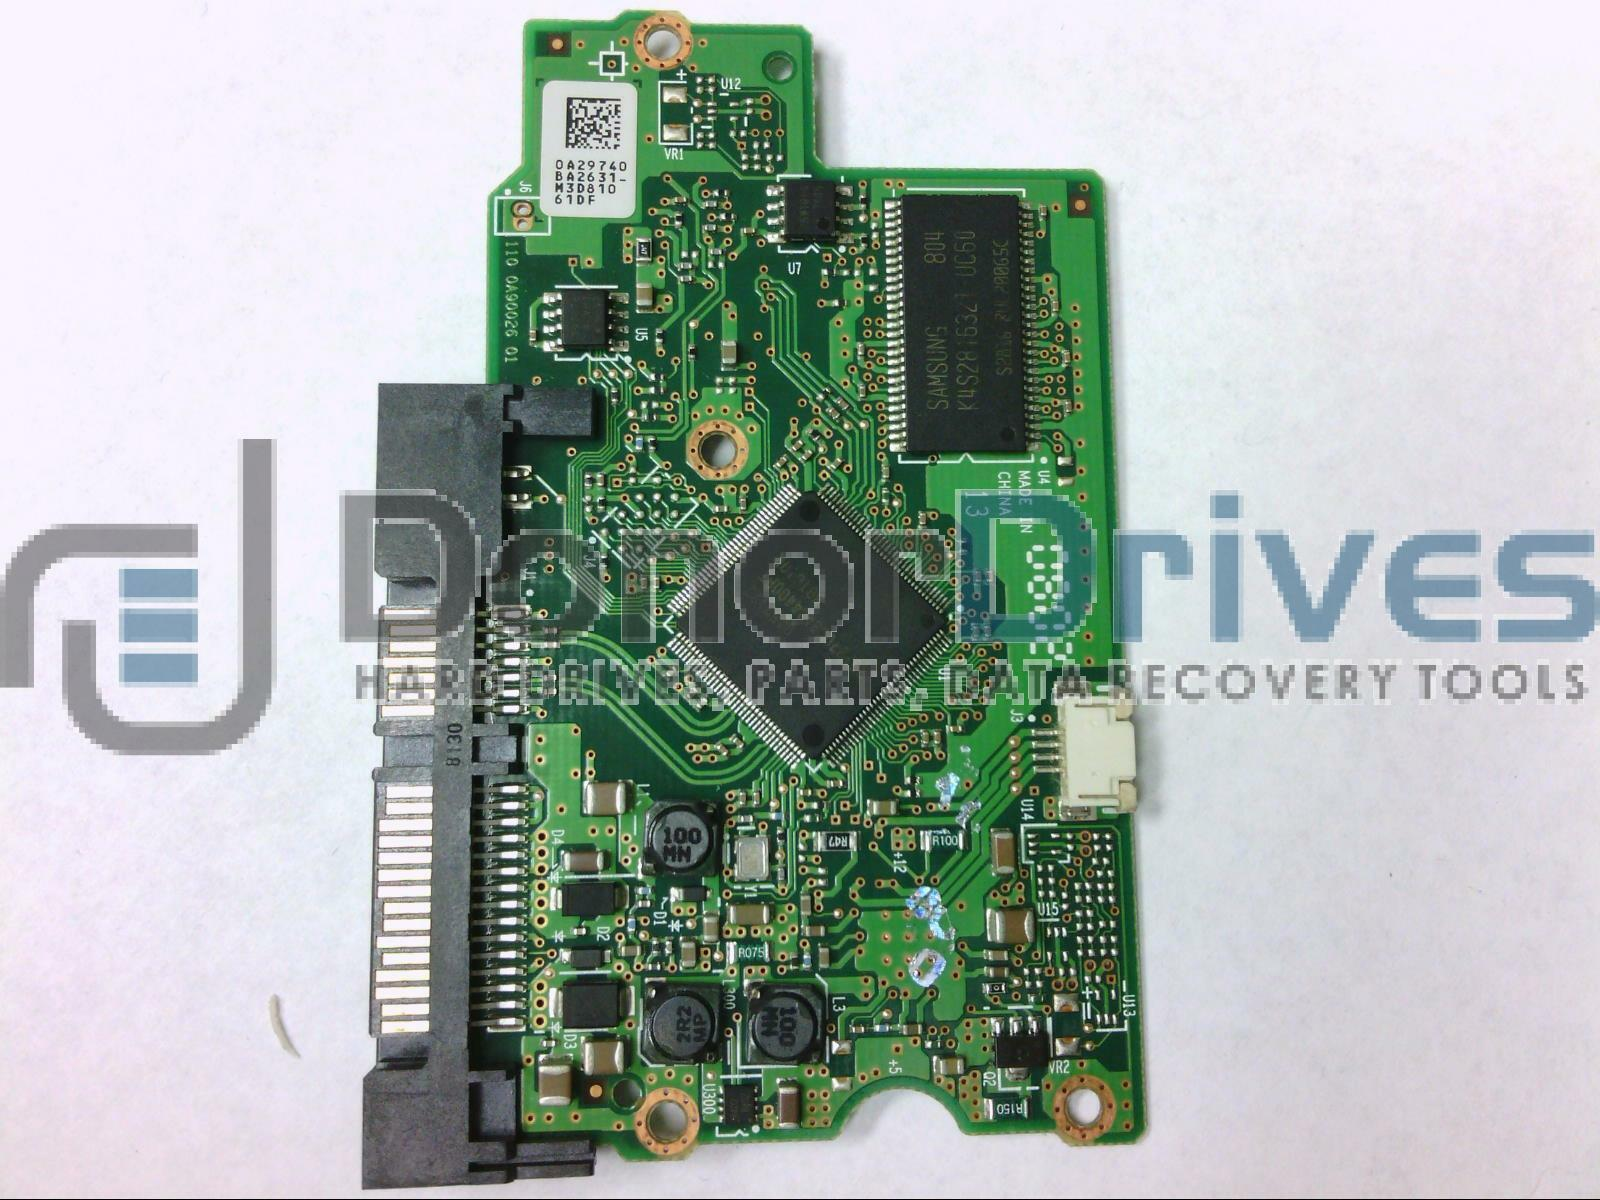 Hdp725050gla360 0a29740 Ba2631 0a36891 Ba2763 Hitachi Sata 35 Circuit Board Module Pcb On Off Dishwasher Printed 1 Of 1only 2 Available